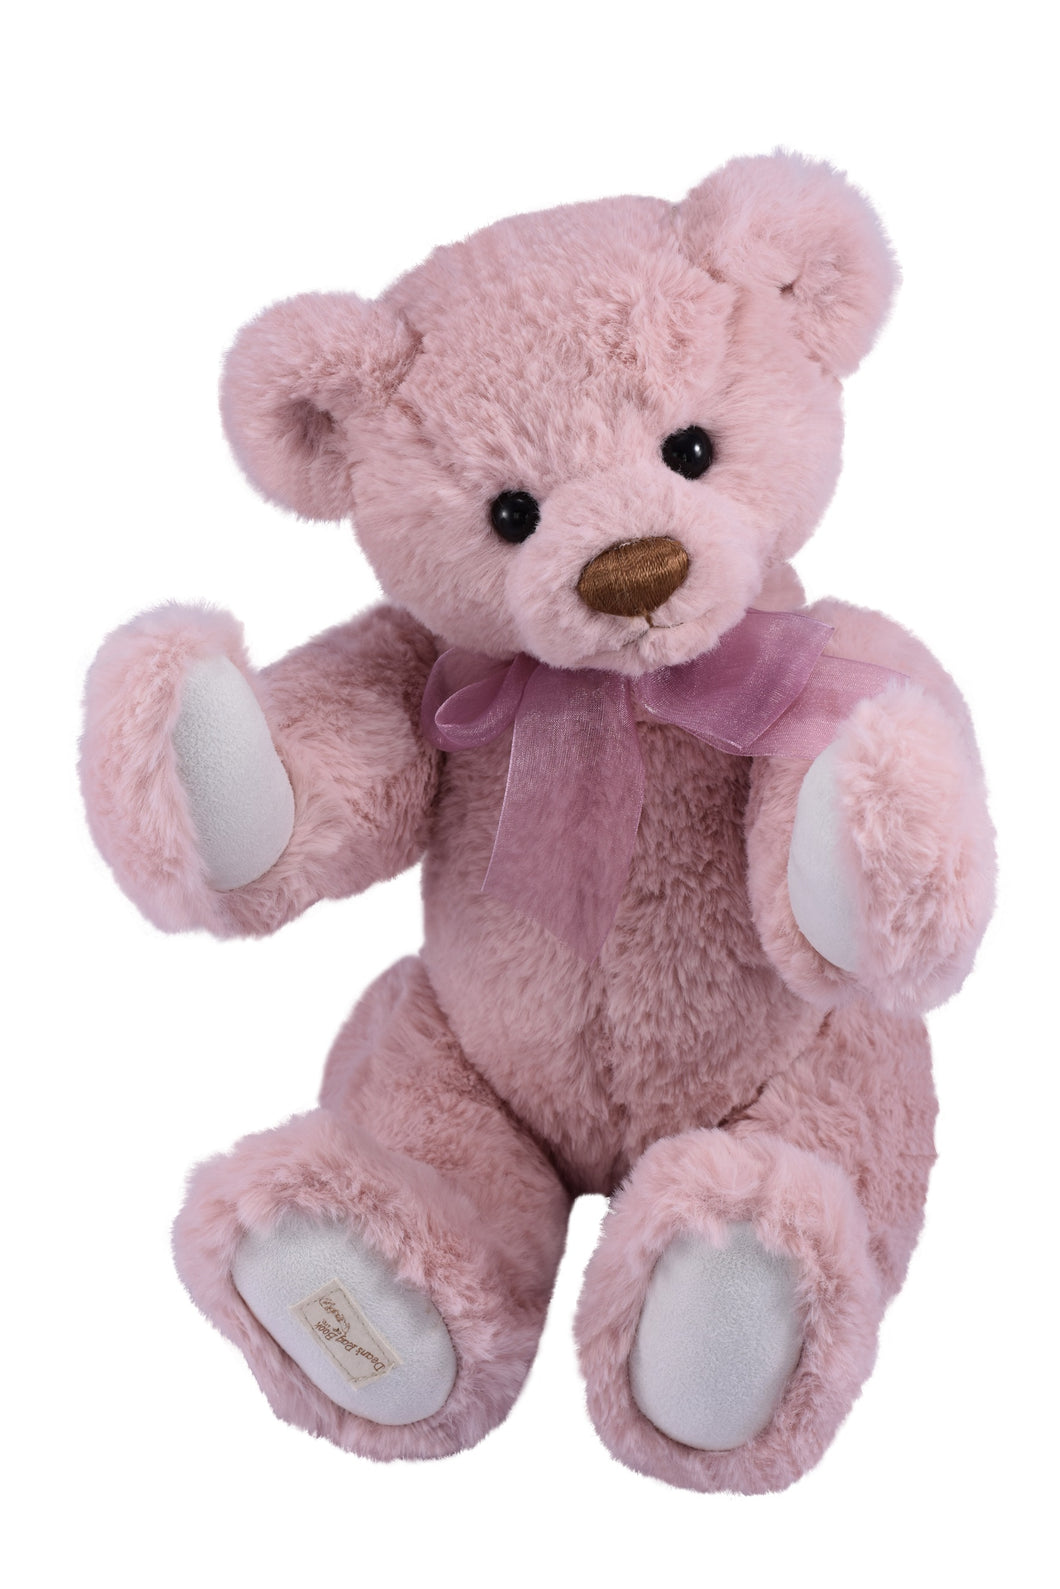 TEDDY WISTFUL / DEAN'S PLUSH LIMITED BEAR